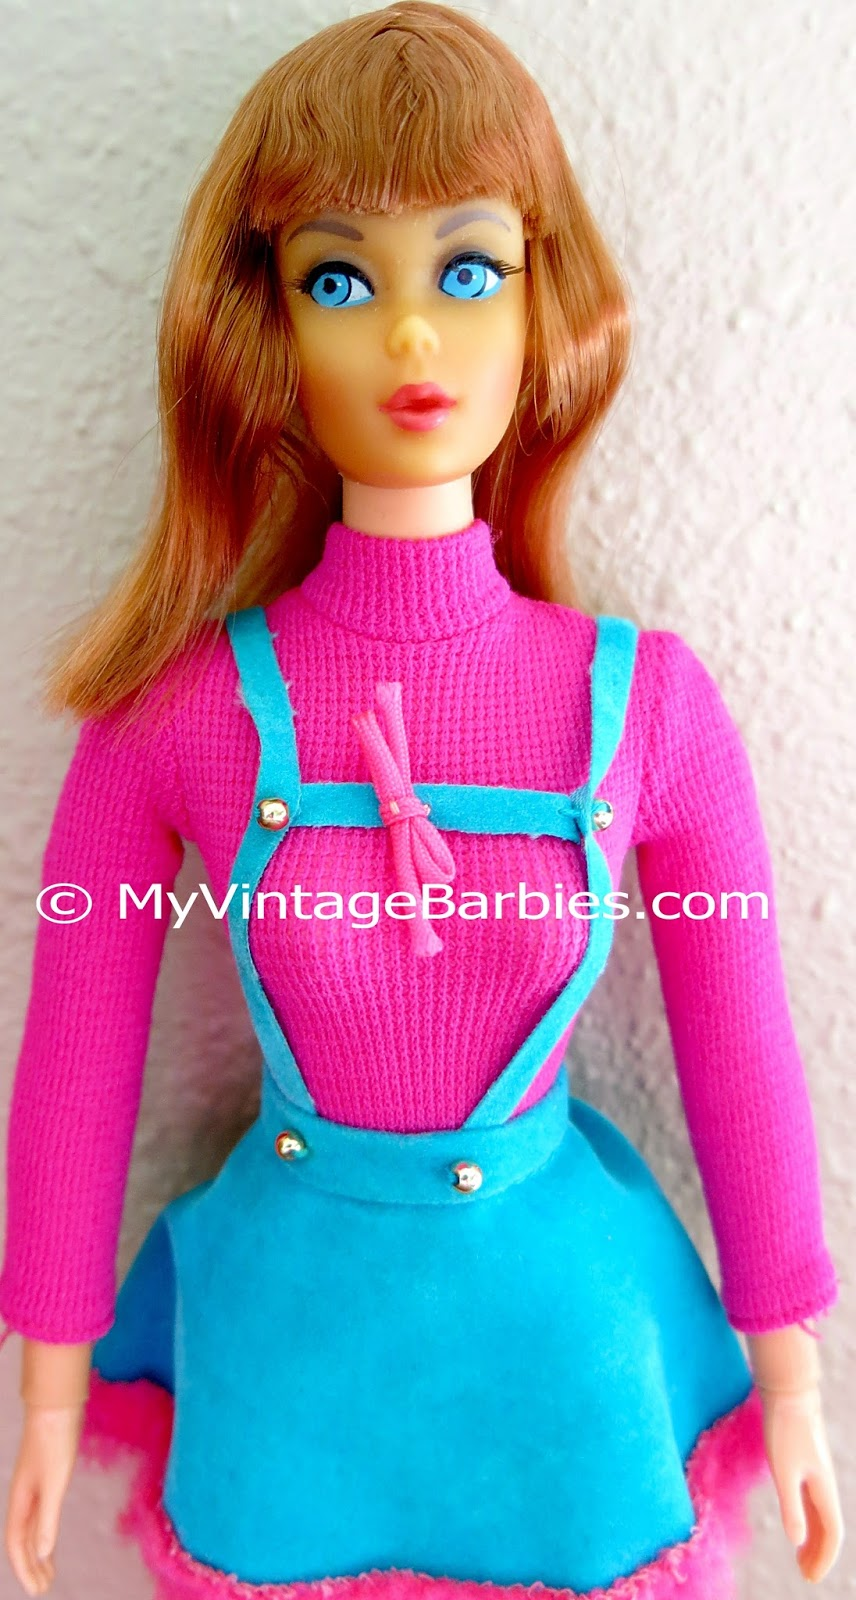 My Vintage Barbies Blog Barbie of the Month Dramatic